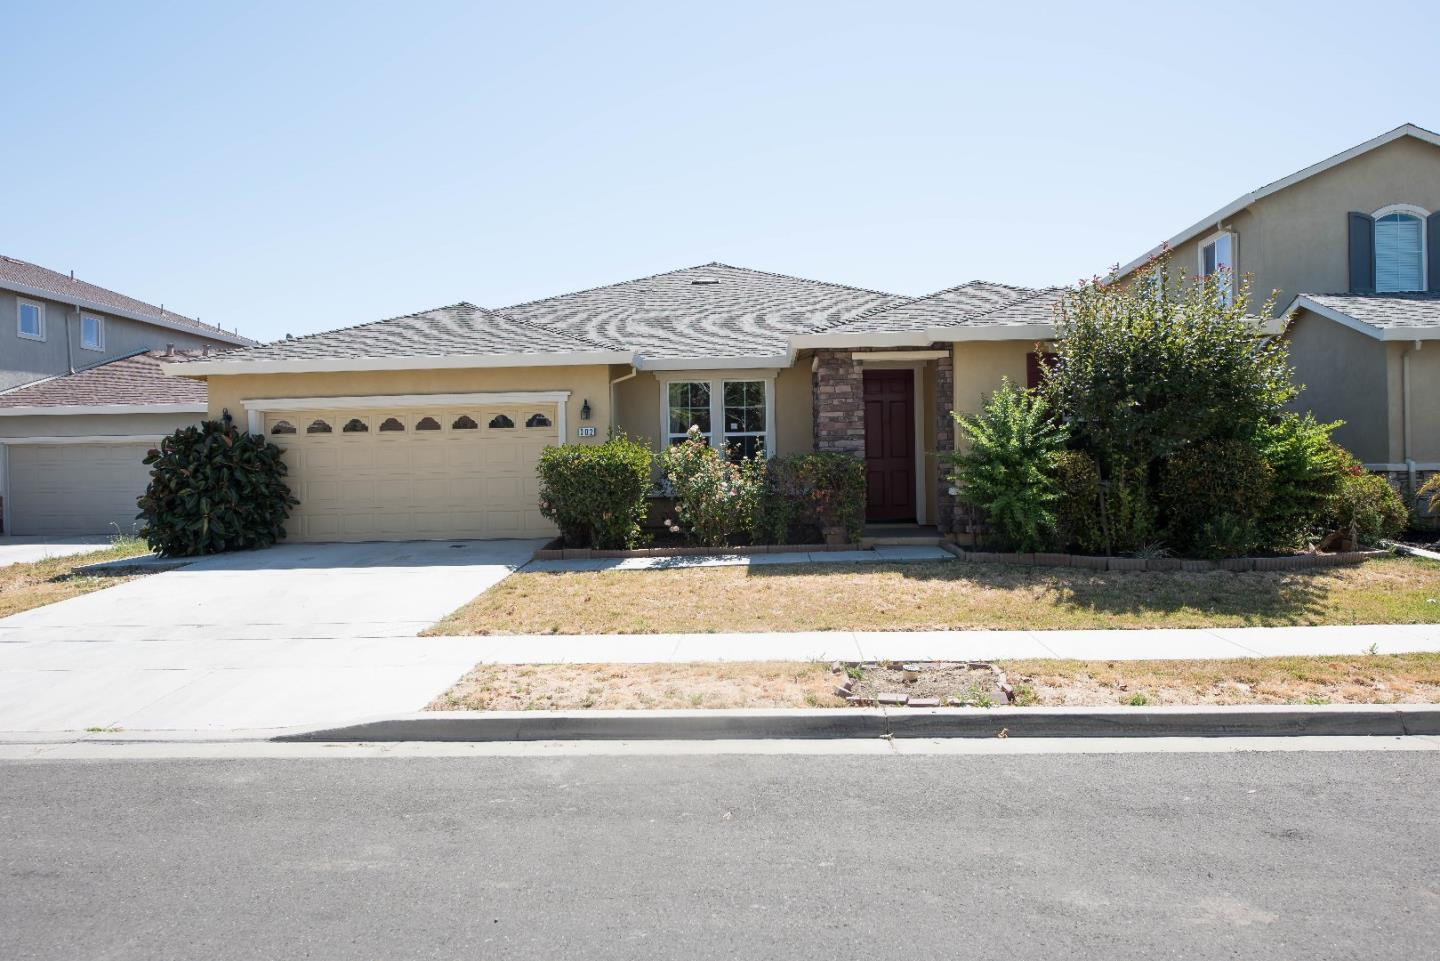 Single Family Home for Sale at 302 Cherry Blossom Lane Patterson, California 95363 United States